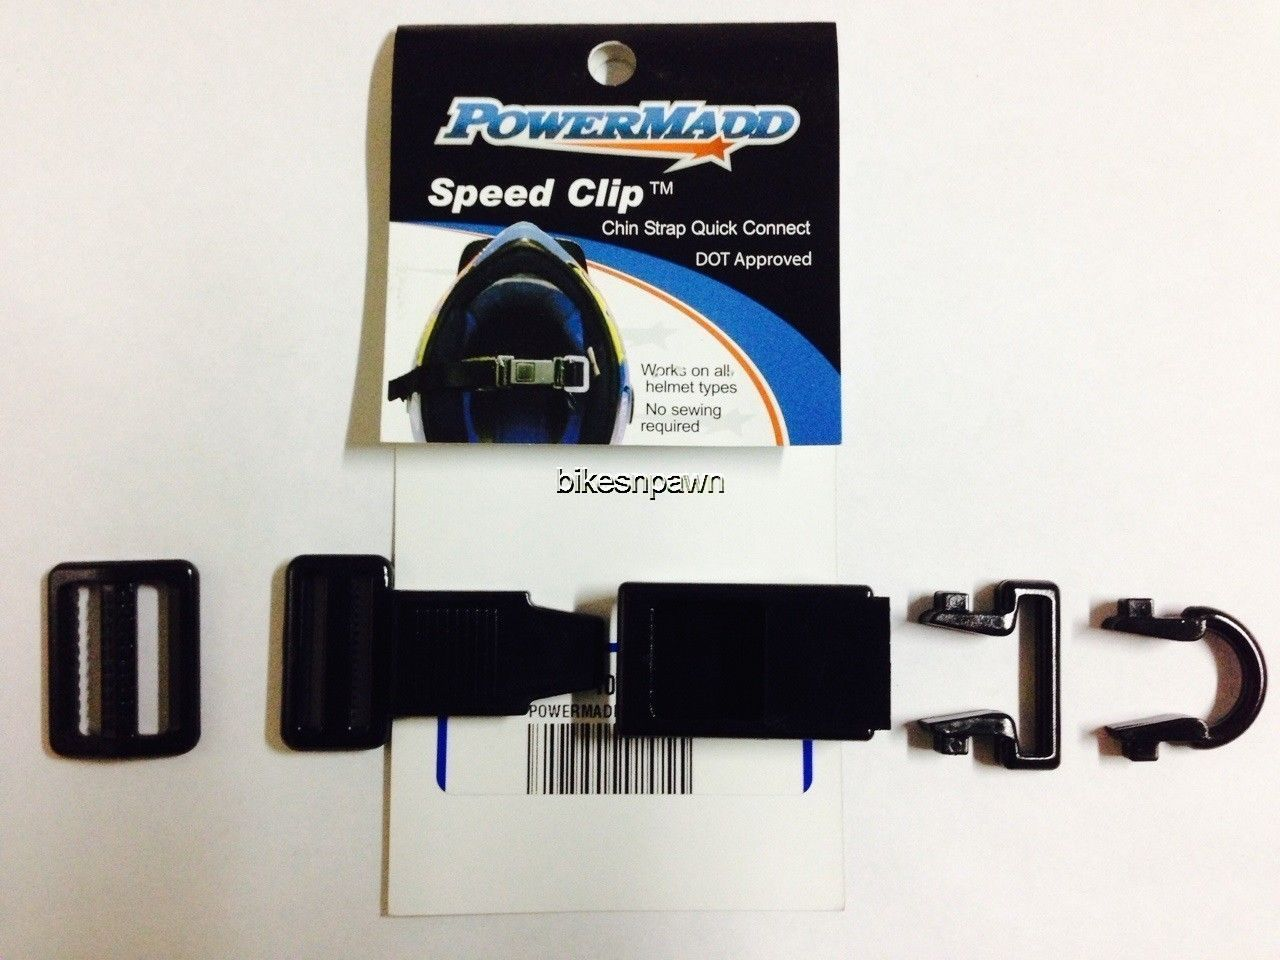 New Powermadd Speed Clip Quick Buckle Helmet Strap Connect Kit  27-1083